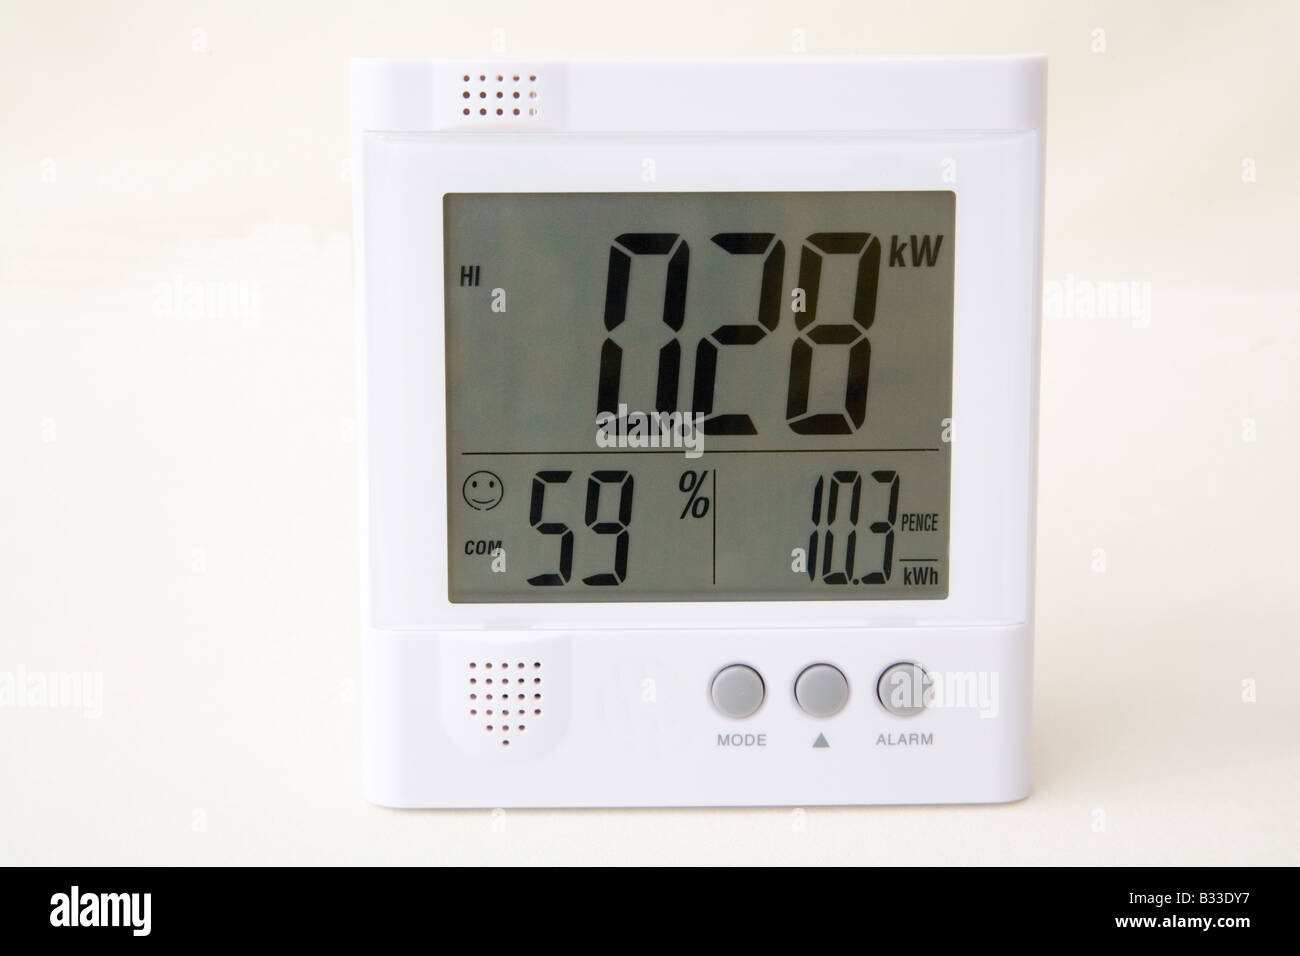 Close up Studio Wireless energy monitor showing kilowatts of electricity being used humidity and price of power Stock Photo